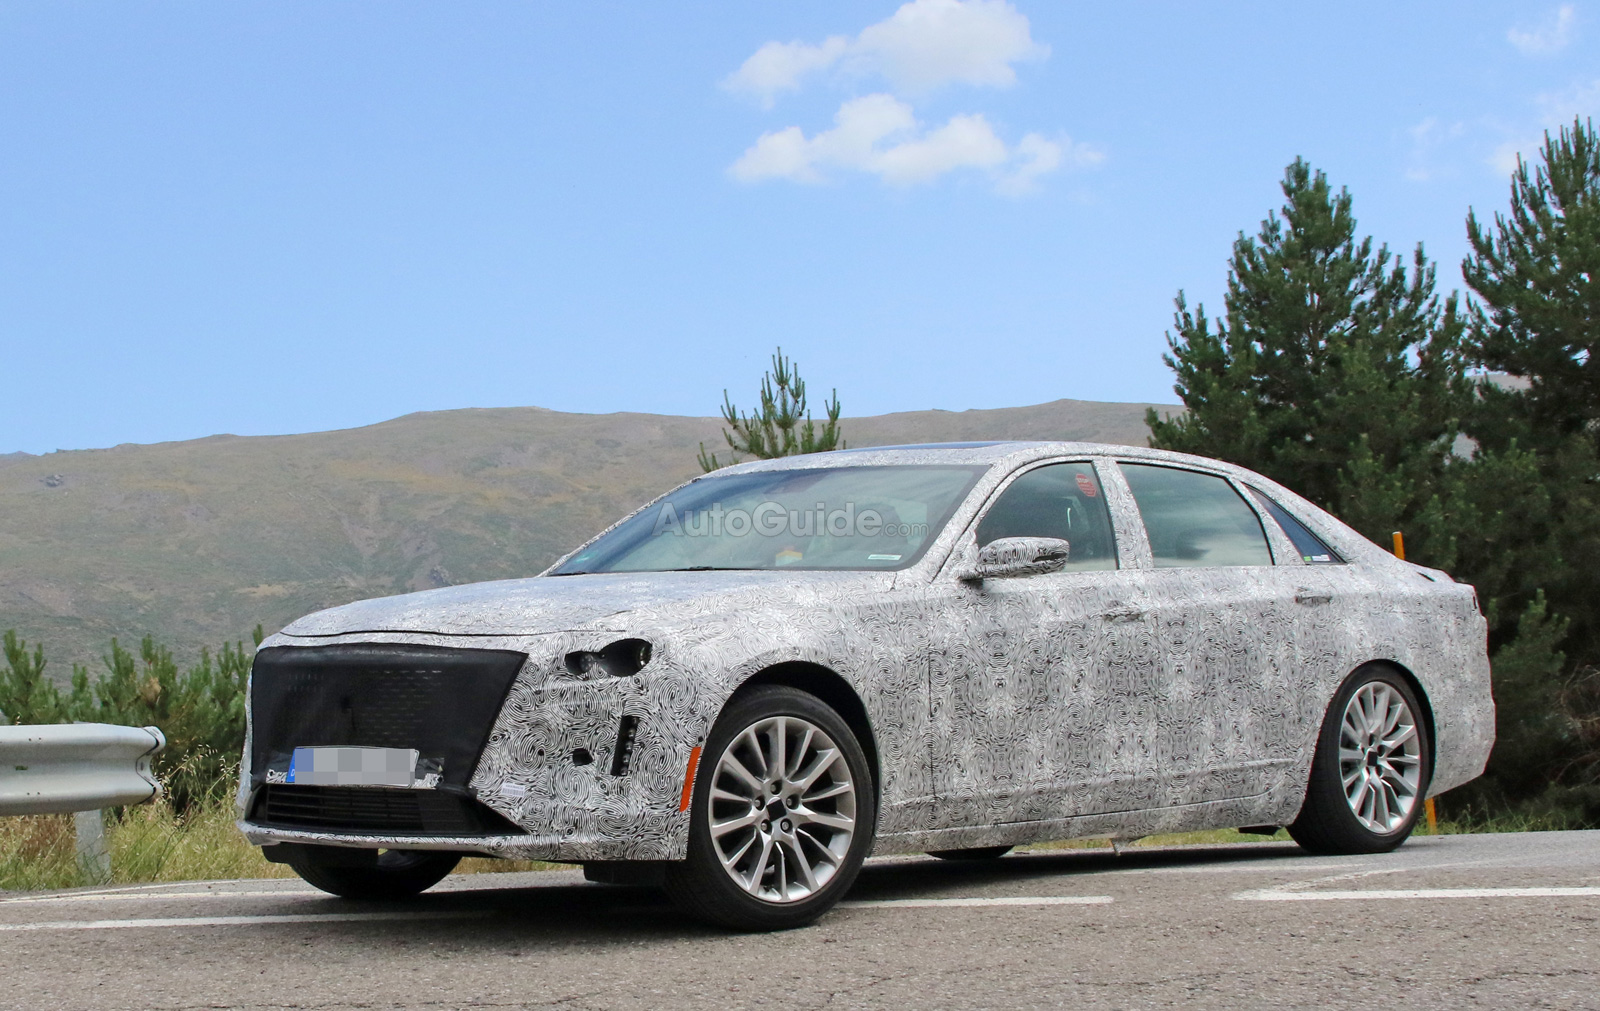 2016 Cadillac Ct6 Release Date Price And Specs: 2019 Cadillac CT6 Price, Review, Release Date, Engine, Specs